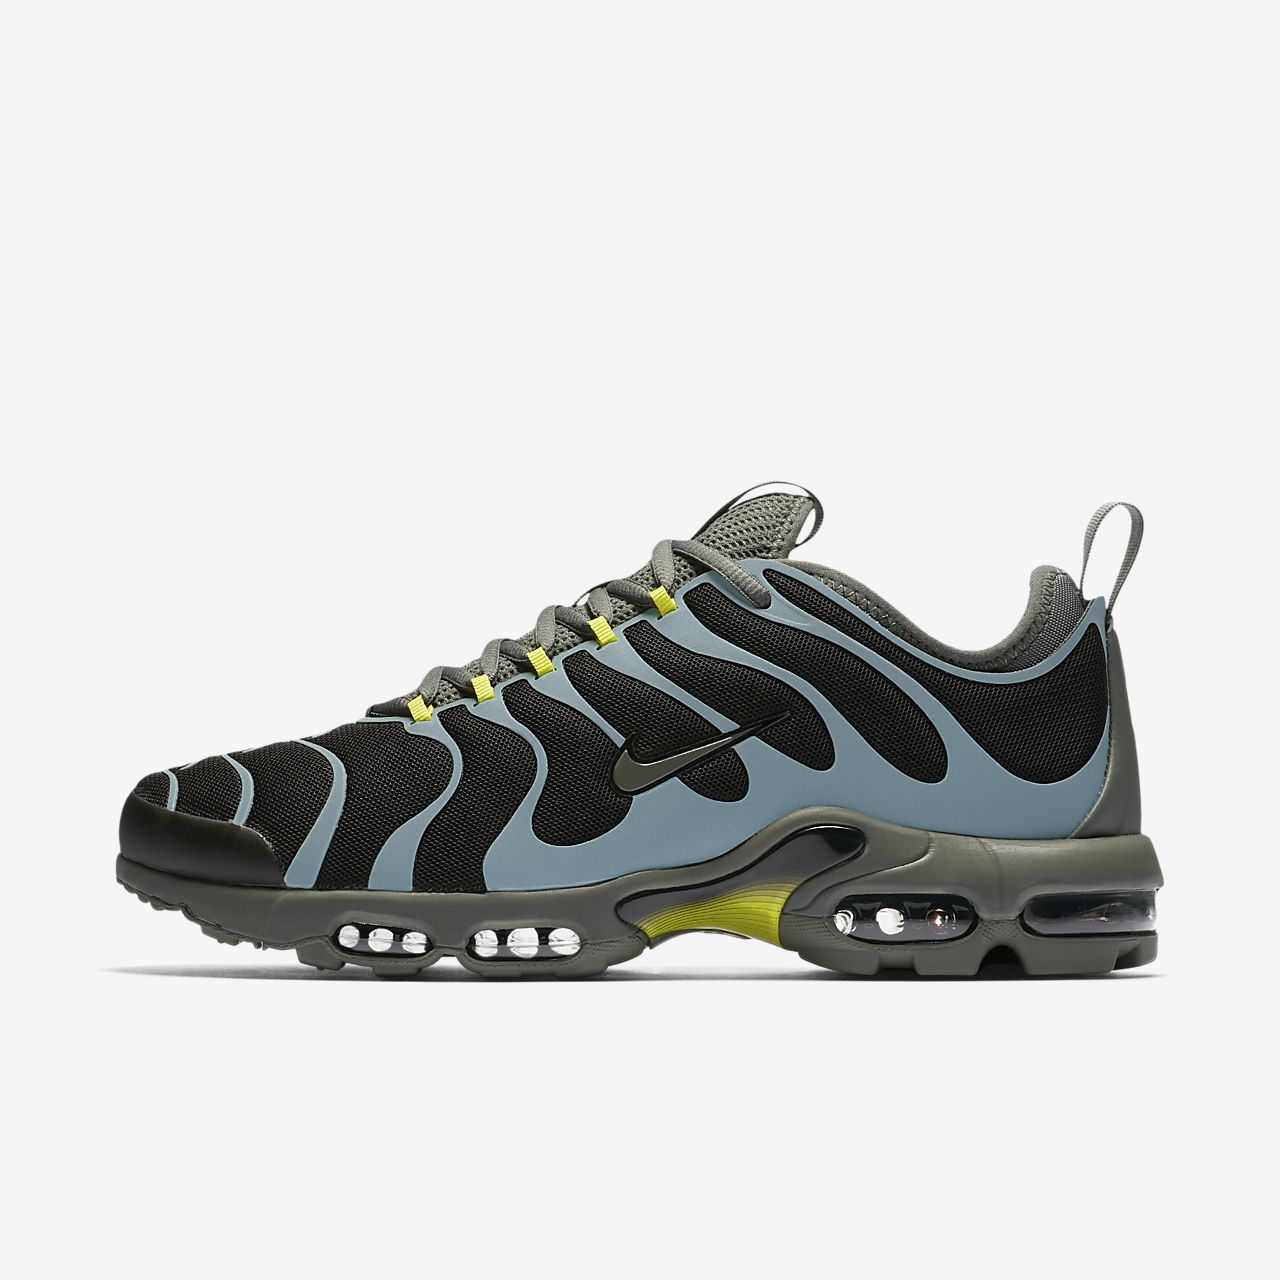 Nike Air Max Plus Tn Ultra Men's Shoe